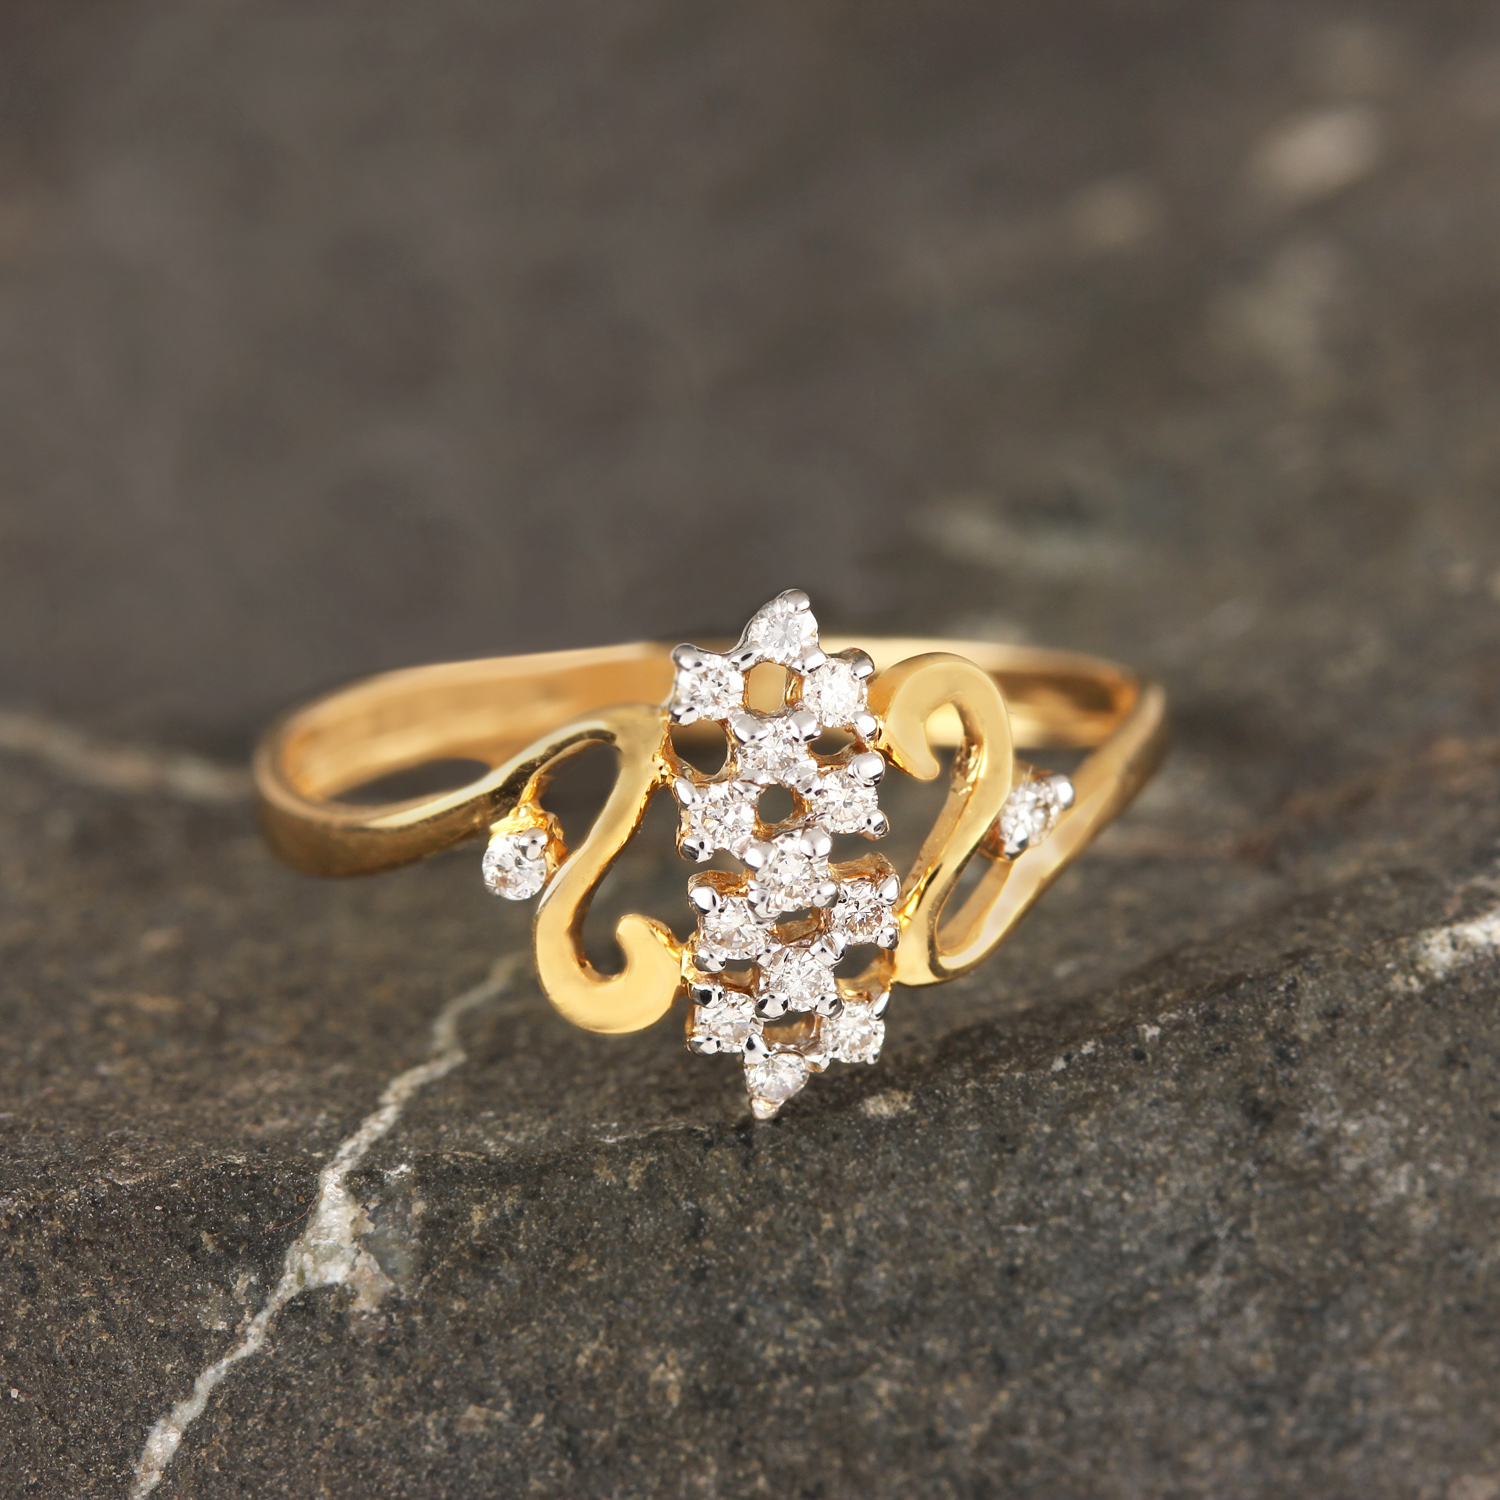 Gold Ring with Beautiful Design